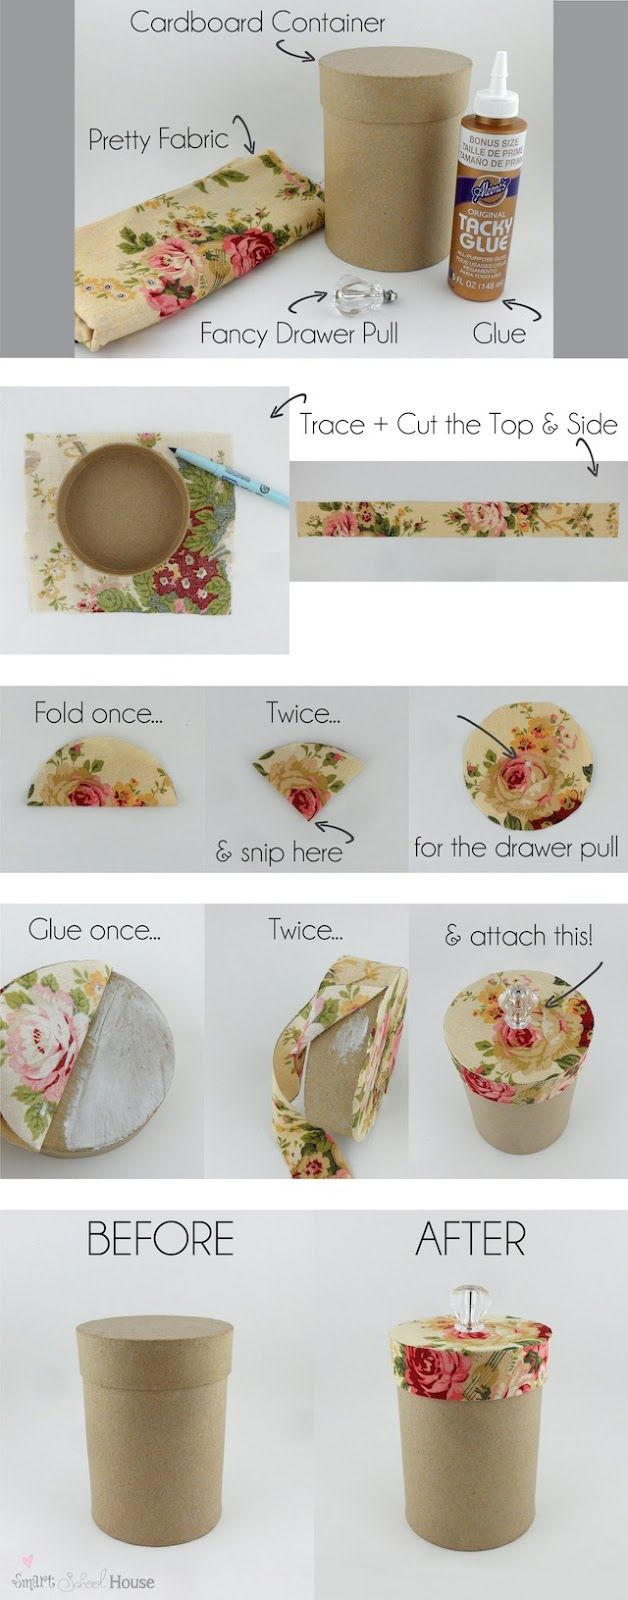 DIY Pretty Storage Containers | Smart School House: Craft and DIY Blog Site, Picture #3 of 4